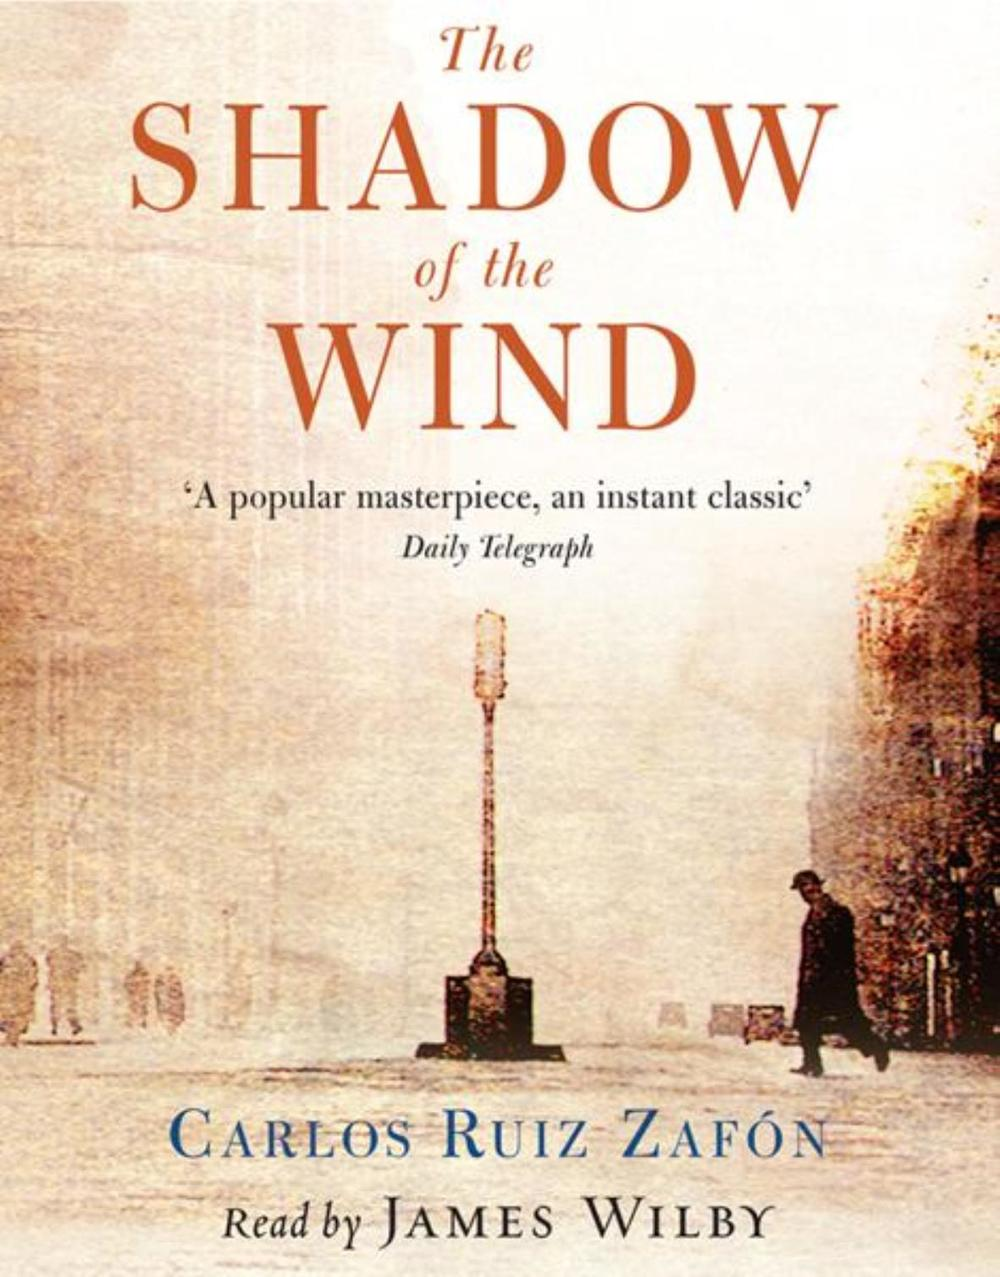 Guest Post: The Evocative and Layered The Shadow of the Wind by Carlos Ruiz Zafon